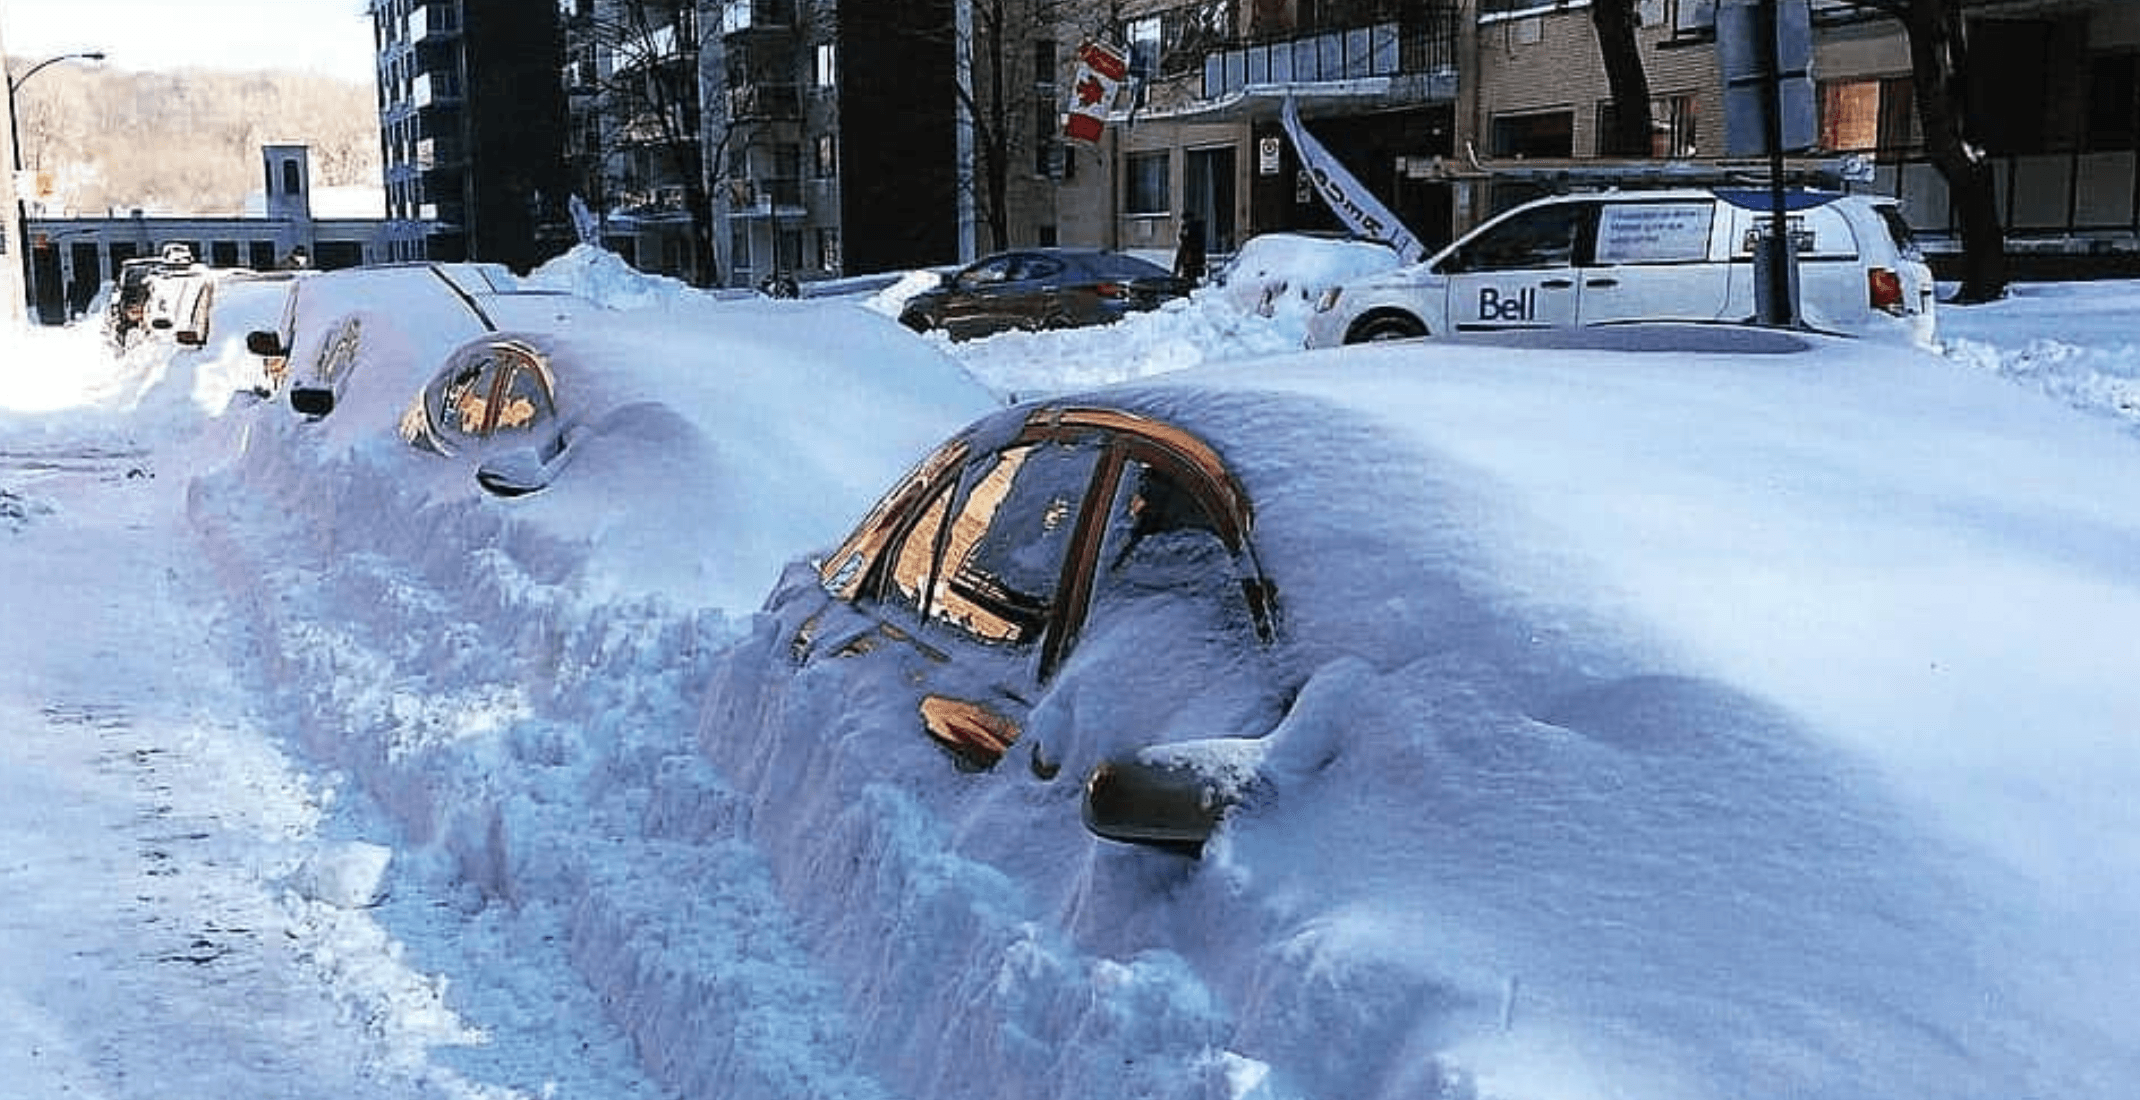 Montreal has received way more snow than usual this winter